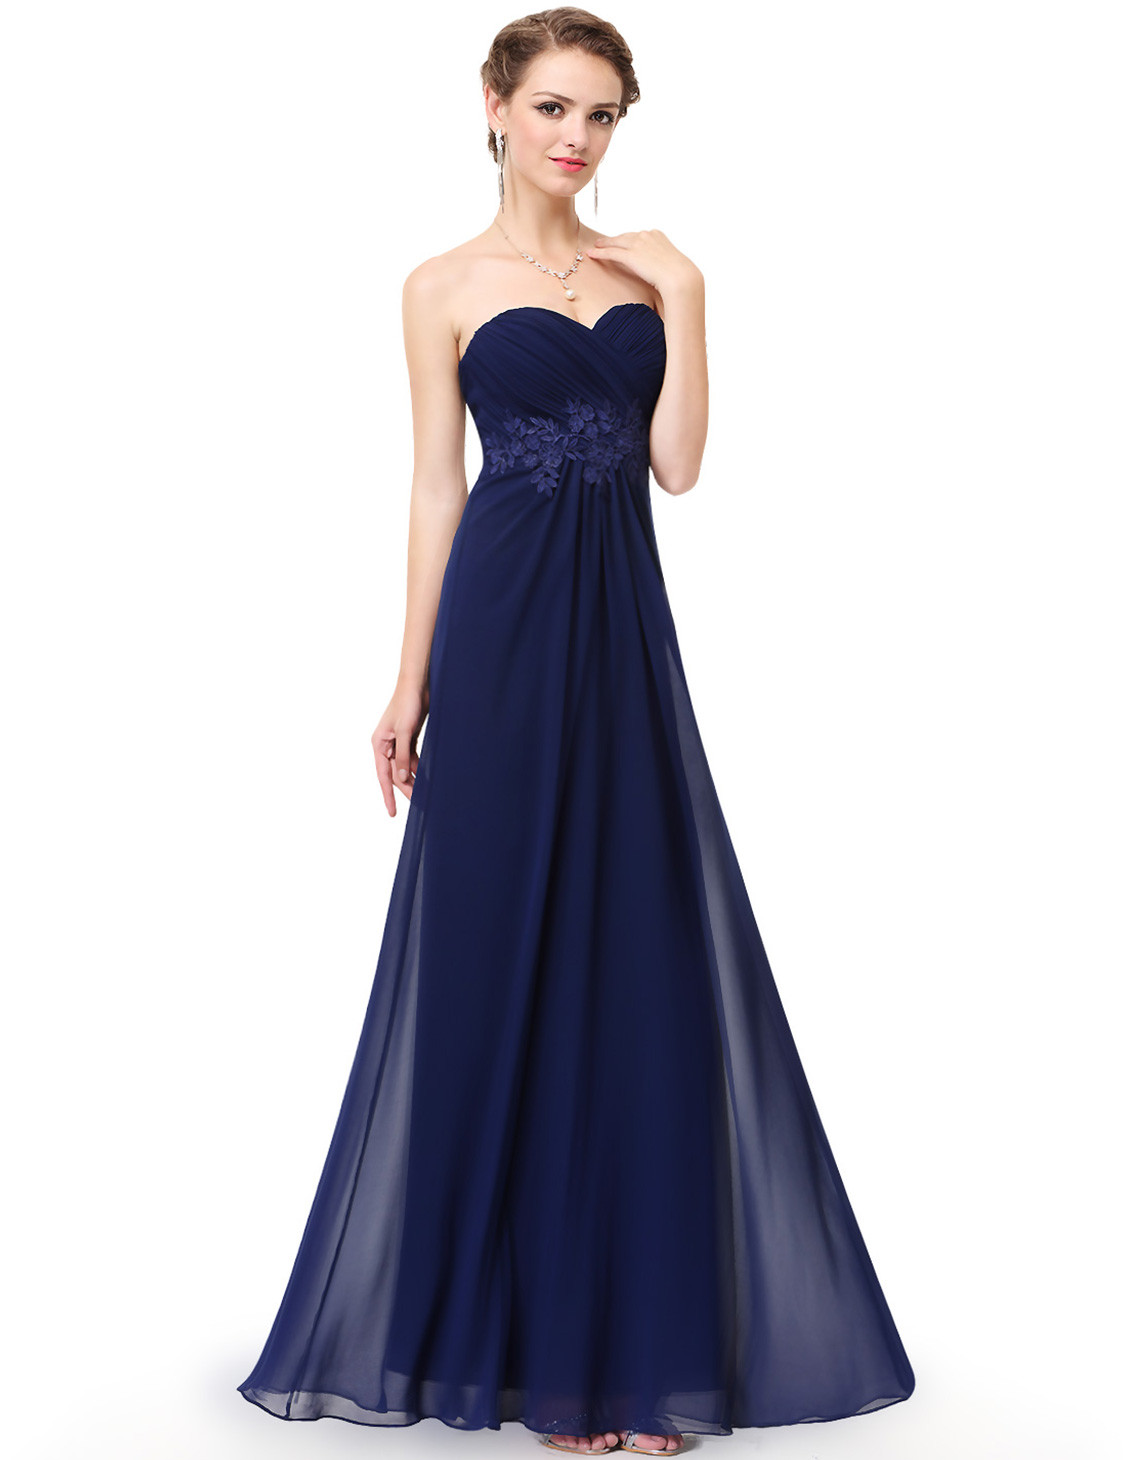 579f4a66972b Navy Strapless Long Sweetheart Neckline Bridesmaid Dress – Budget ...